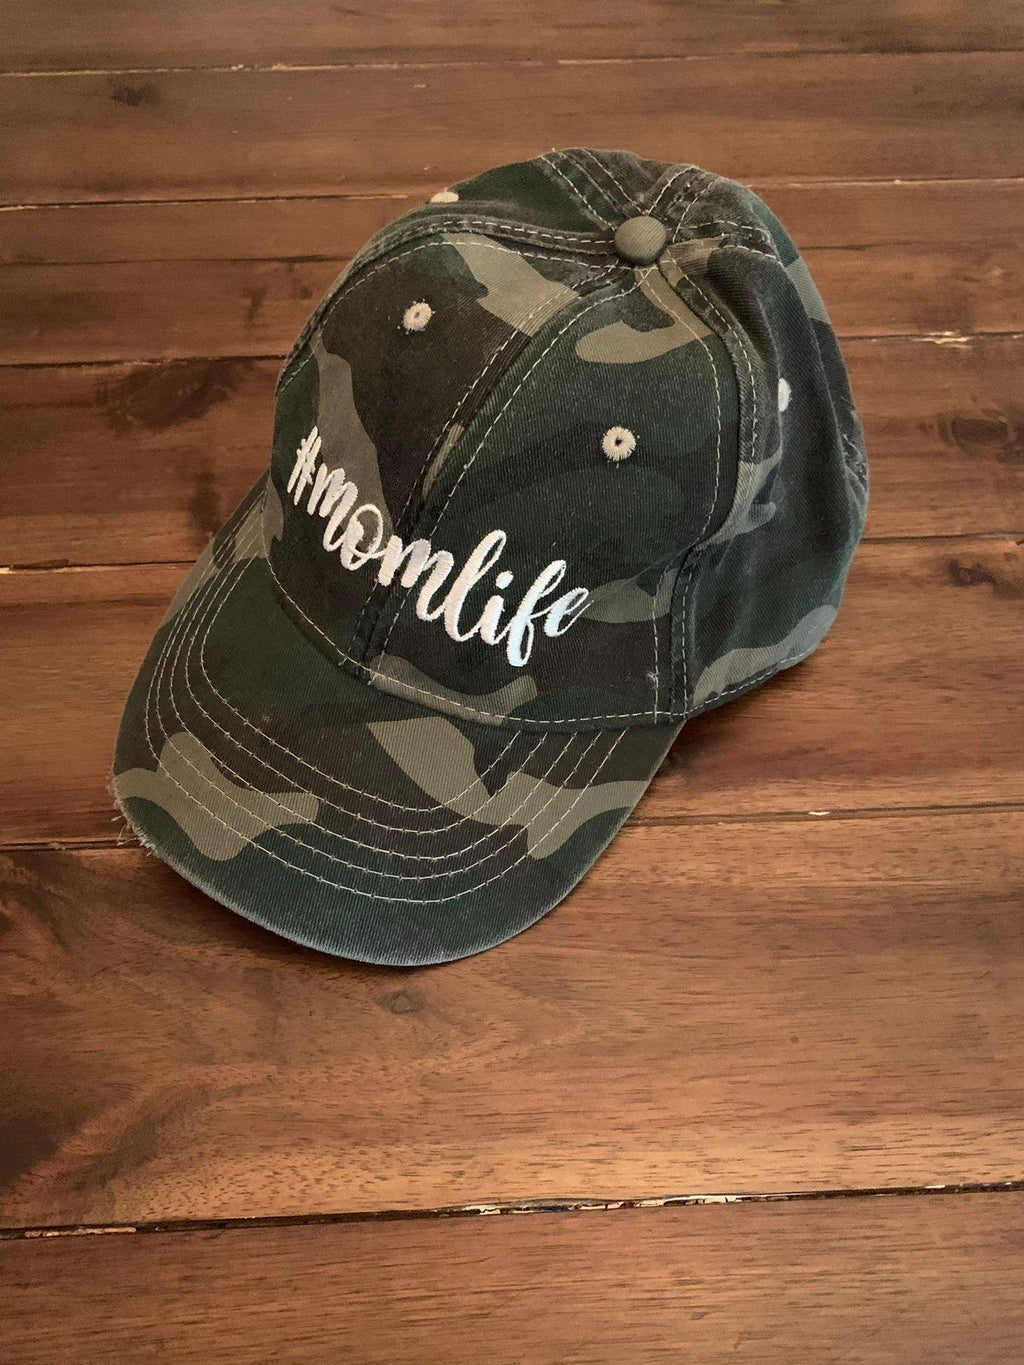 Monogrammed #momlife Camo Hat | Boy Mom Life Camo Baseball Cap | New Mom Gift | Boy Mom Gift